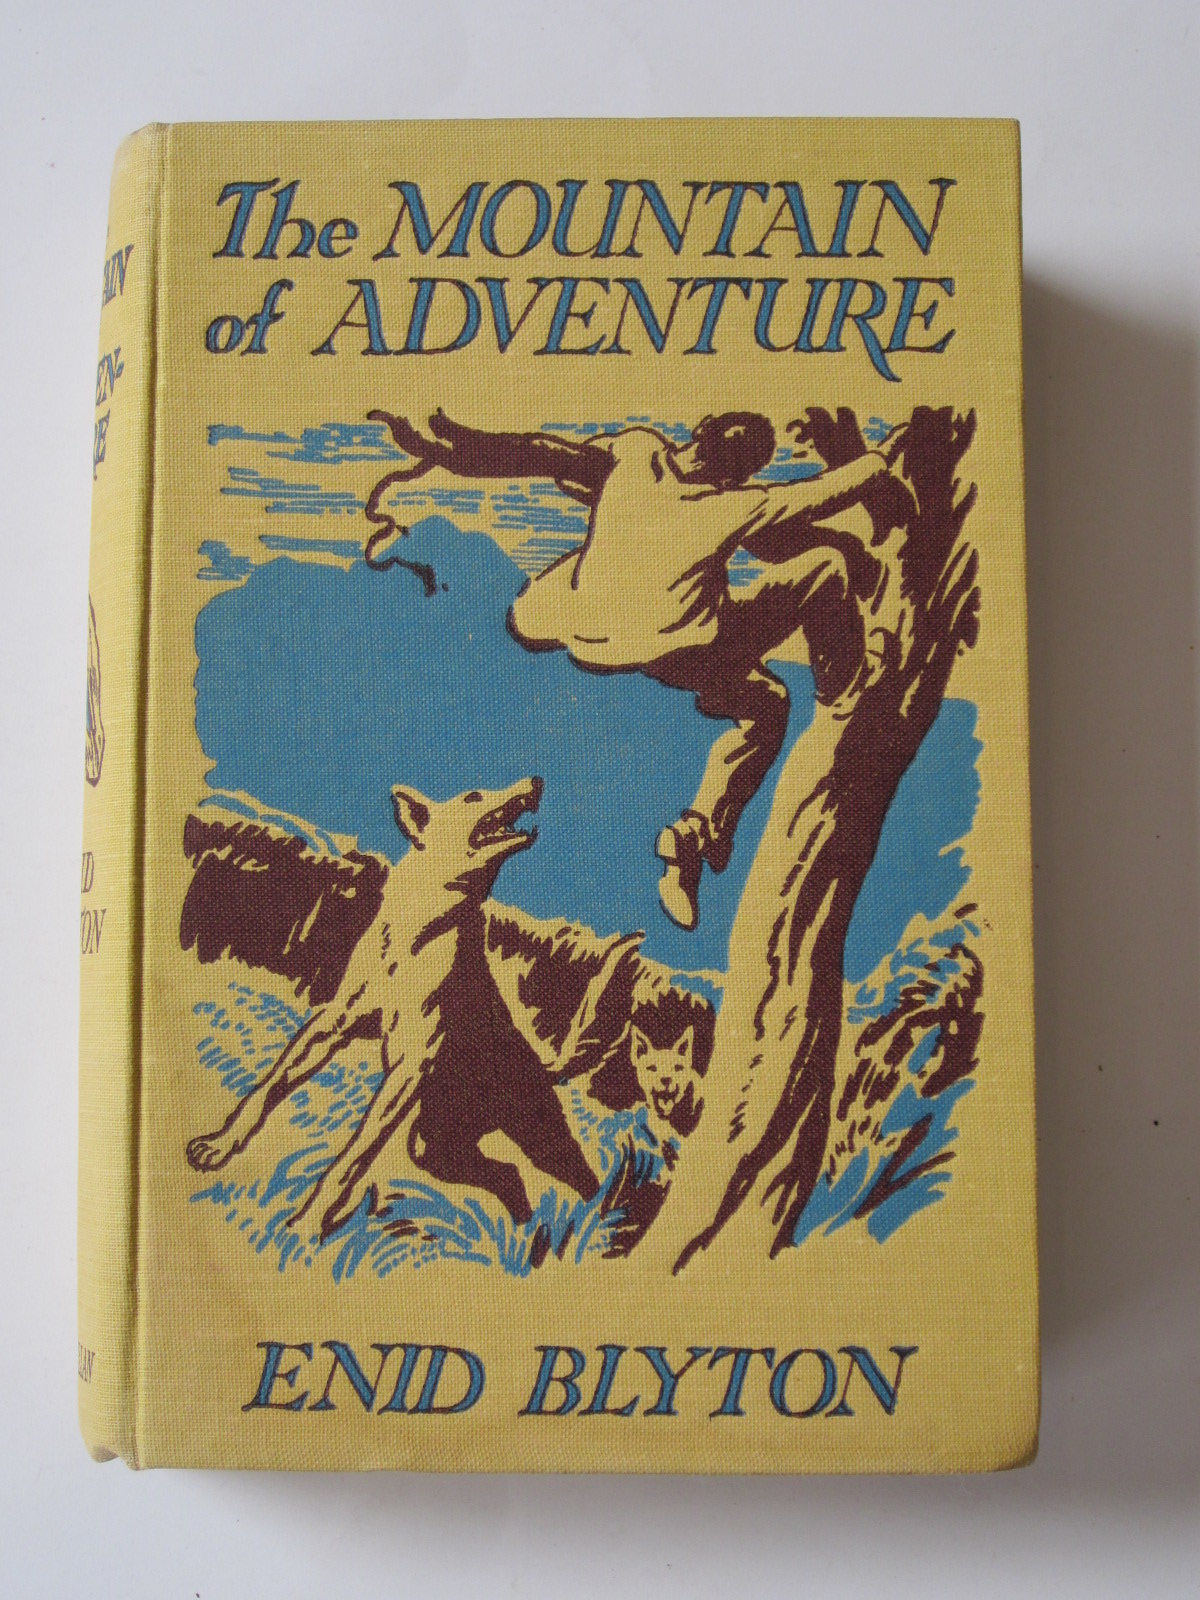 Photo of THE MOUNTAIN OF ADVENTURE written by Blyton, Enid illustrated by Tresilian, Stuart published by Macmillan & Co. Ltd. (STOCK CODE: 1308177)  for sale by Stella & Rose's Books